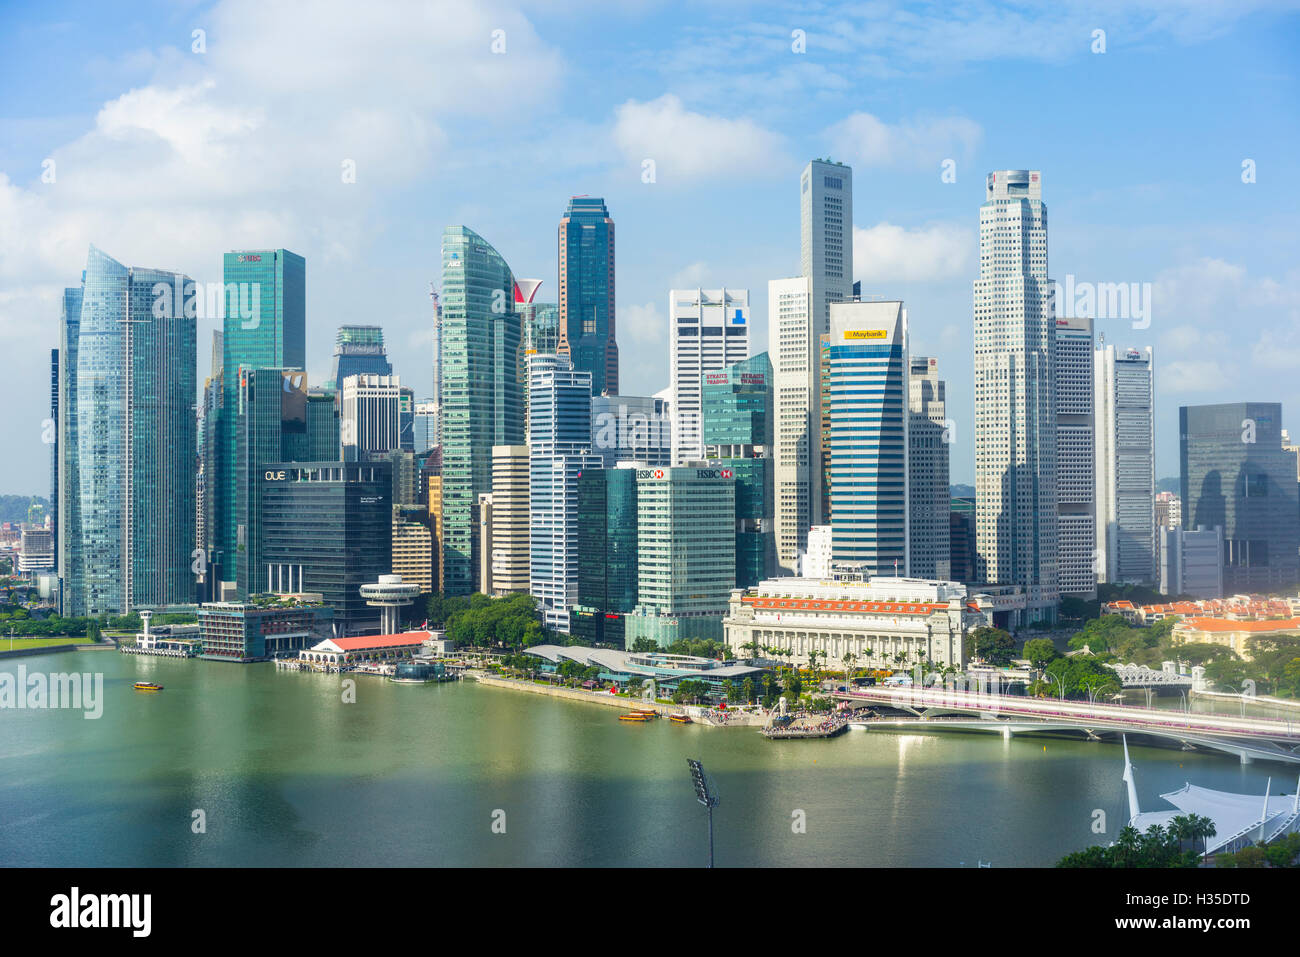 Singapore skyline, skyscrapers with the Fullerton Hotel and Jubilee Bridge in the foreground by Marina Bay, Singapore - Stock Image